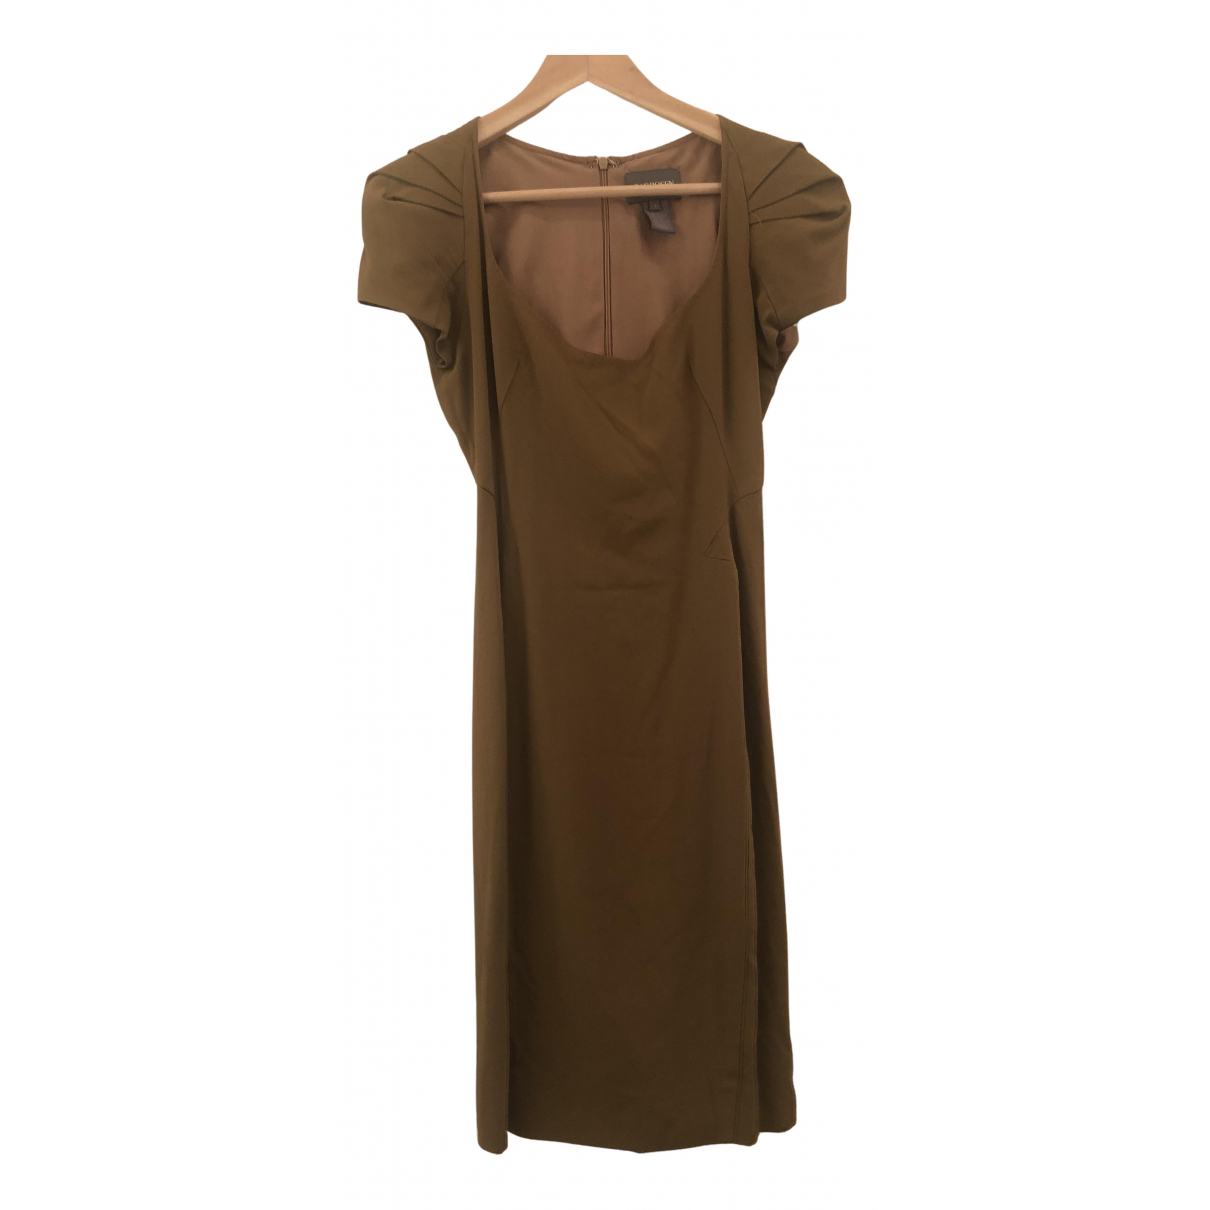 Zac Posen N Khaki dress for Women 2 US